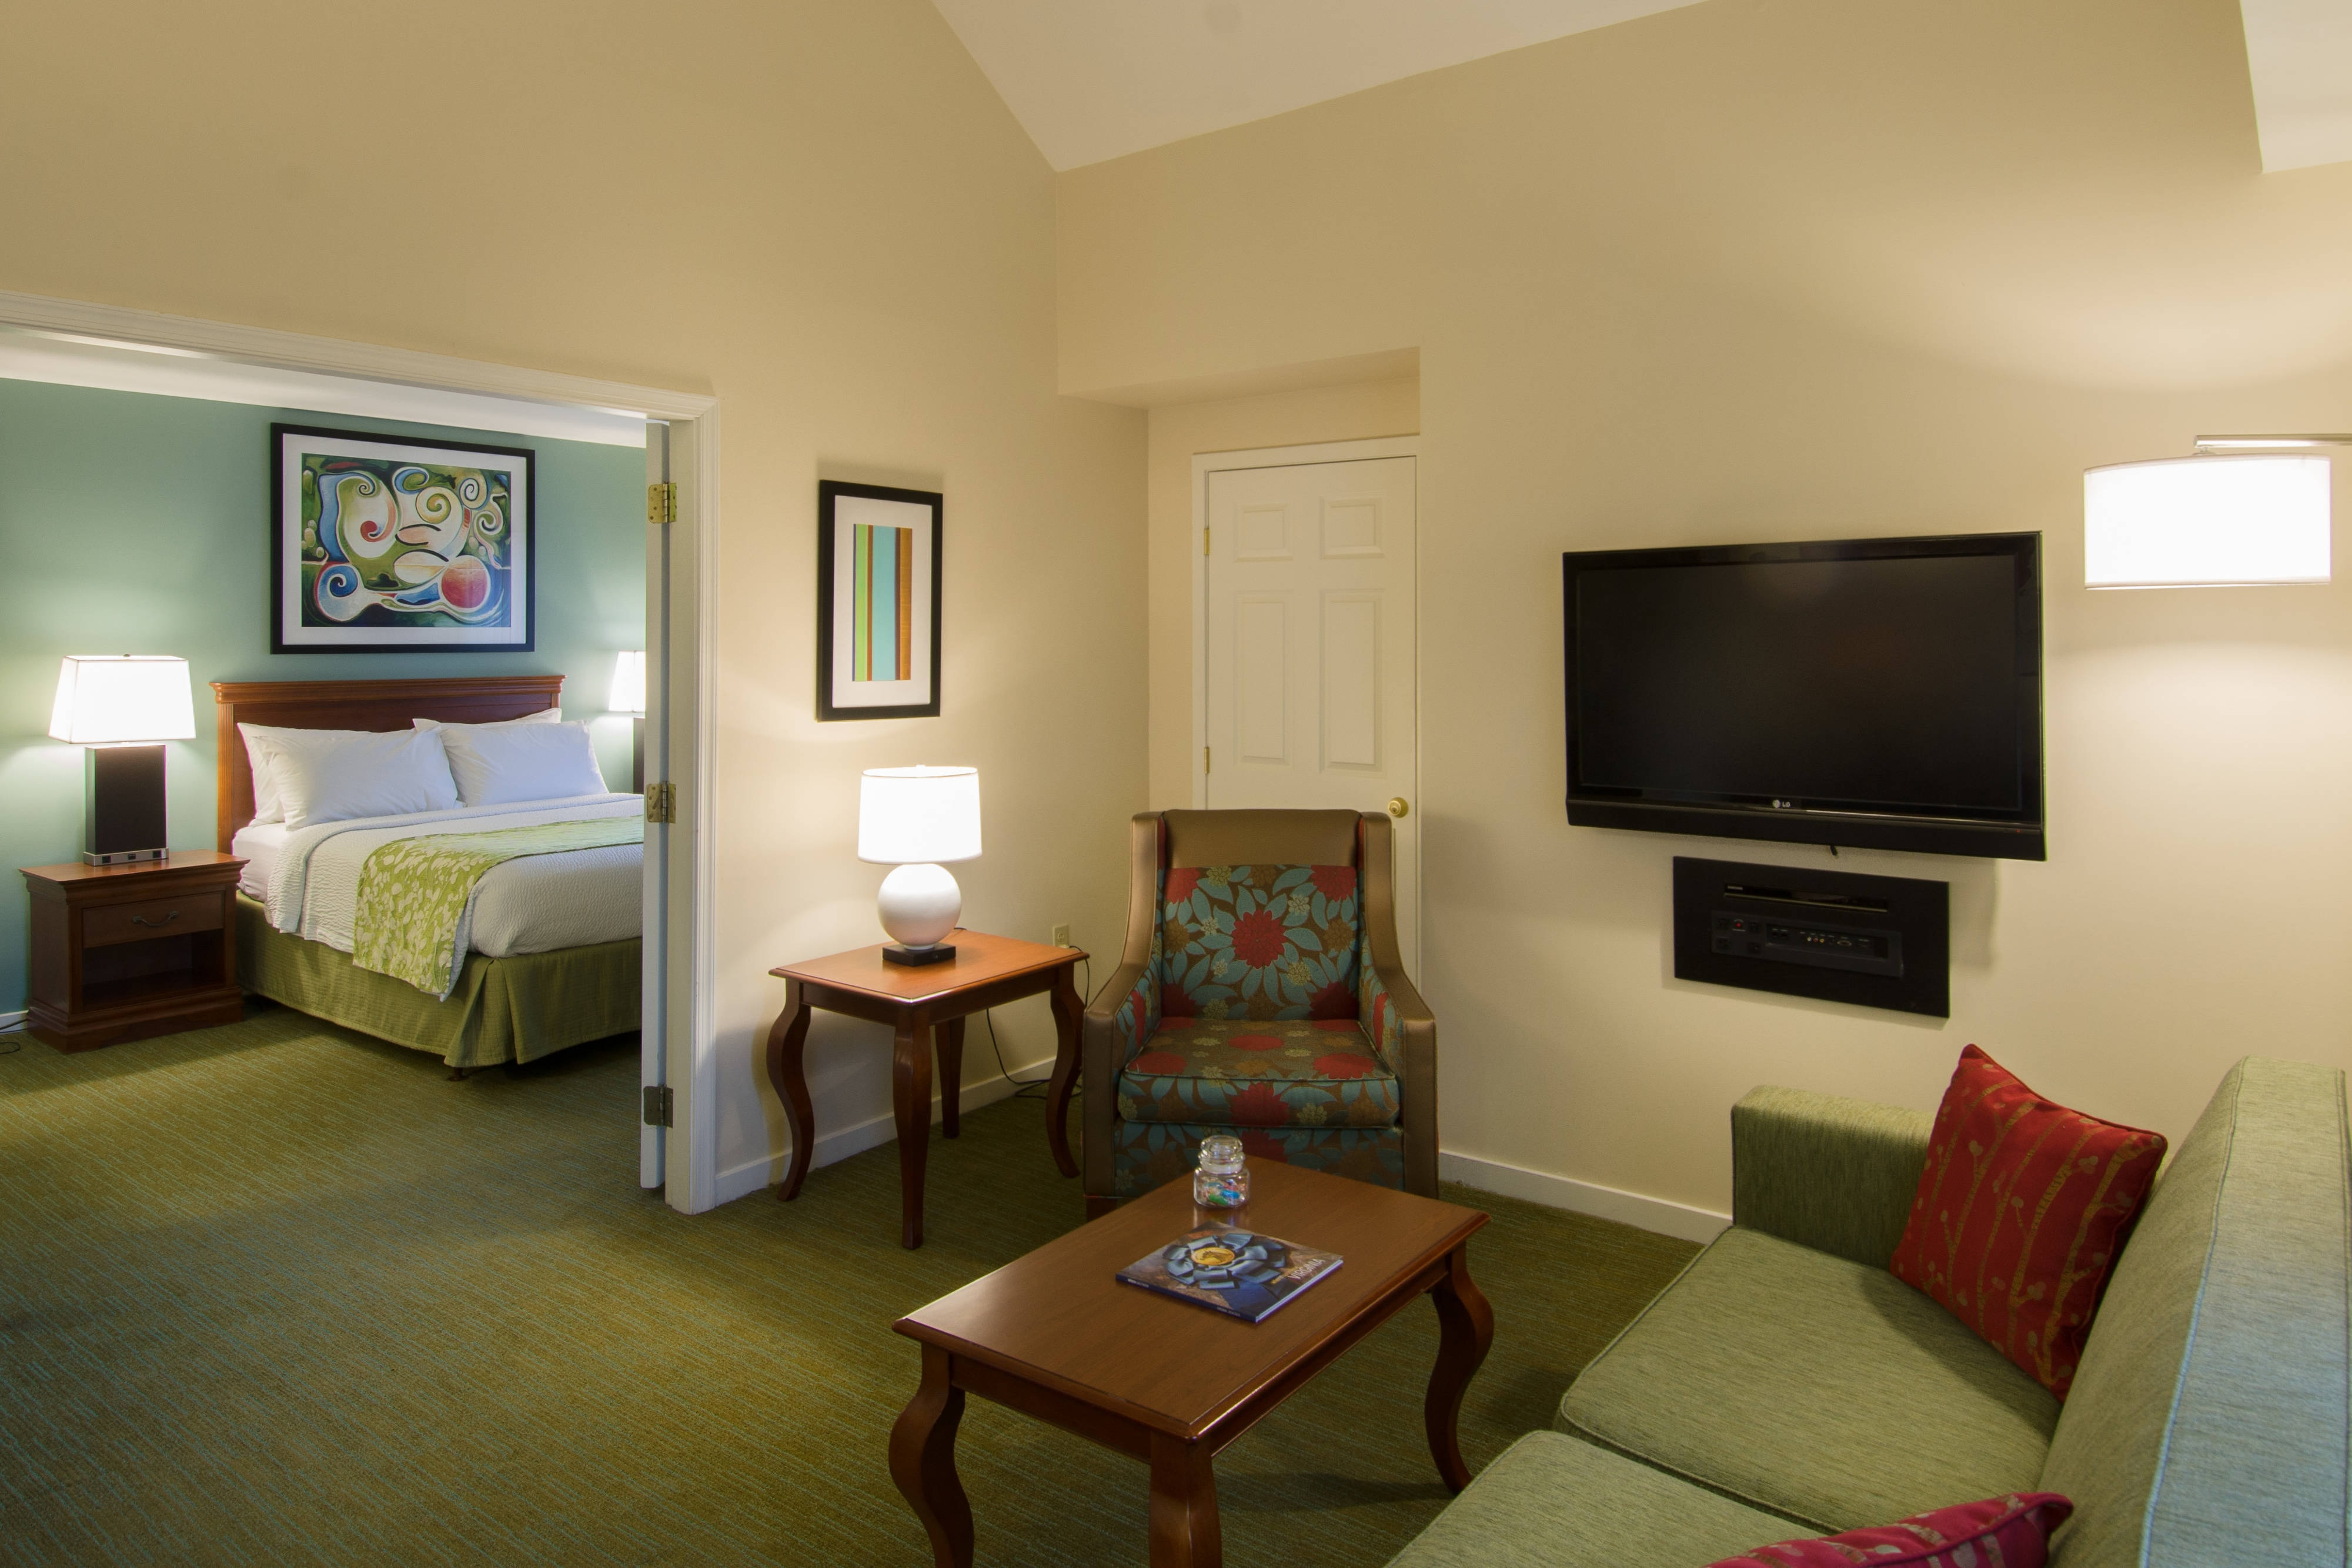 new inn orleans hor is suites suite in all clsc an hotel residence elmwood bedroom rooms west hotels msyew